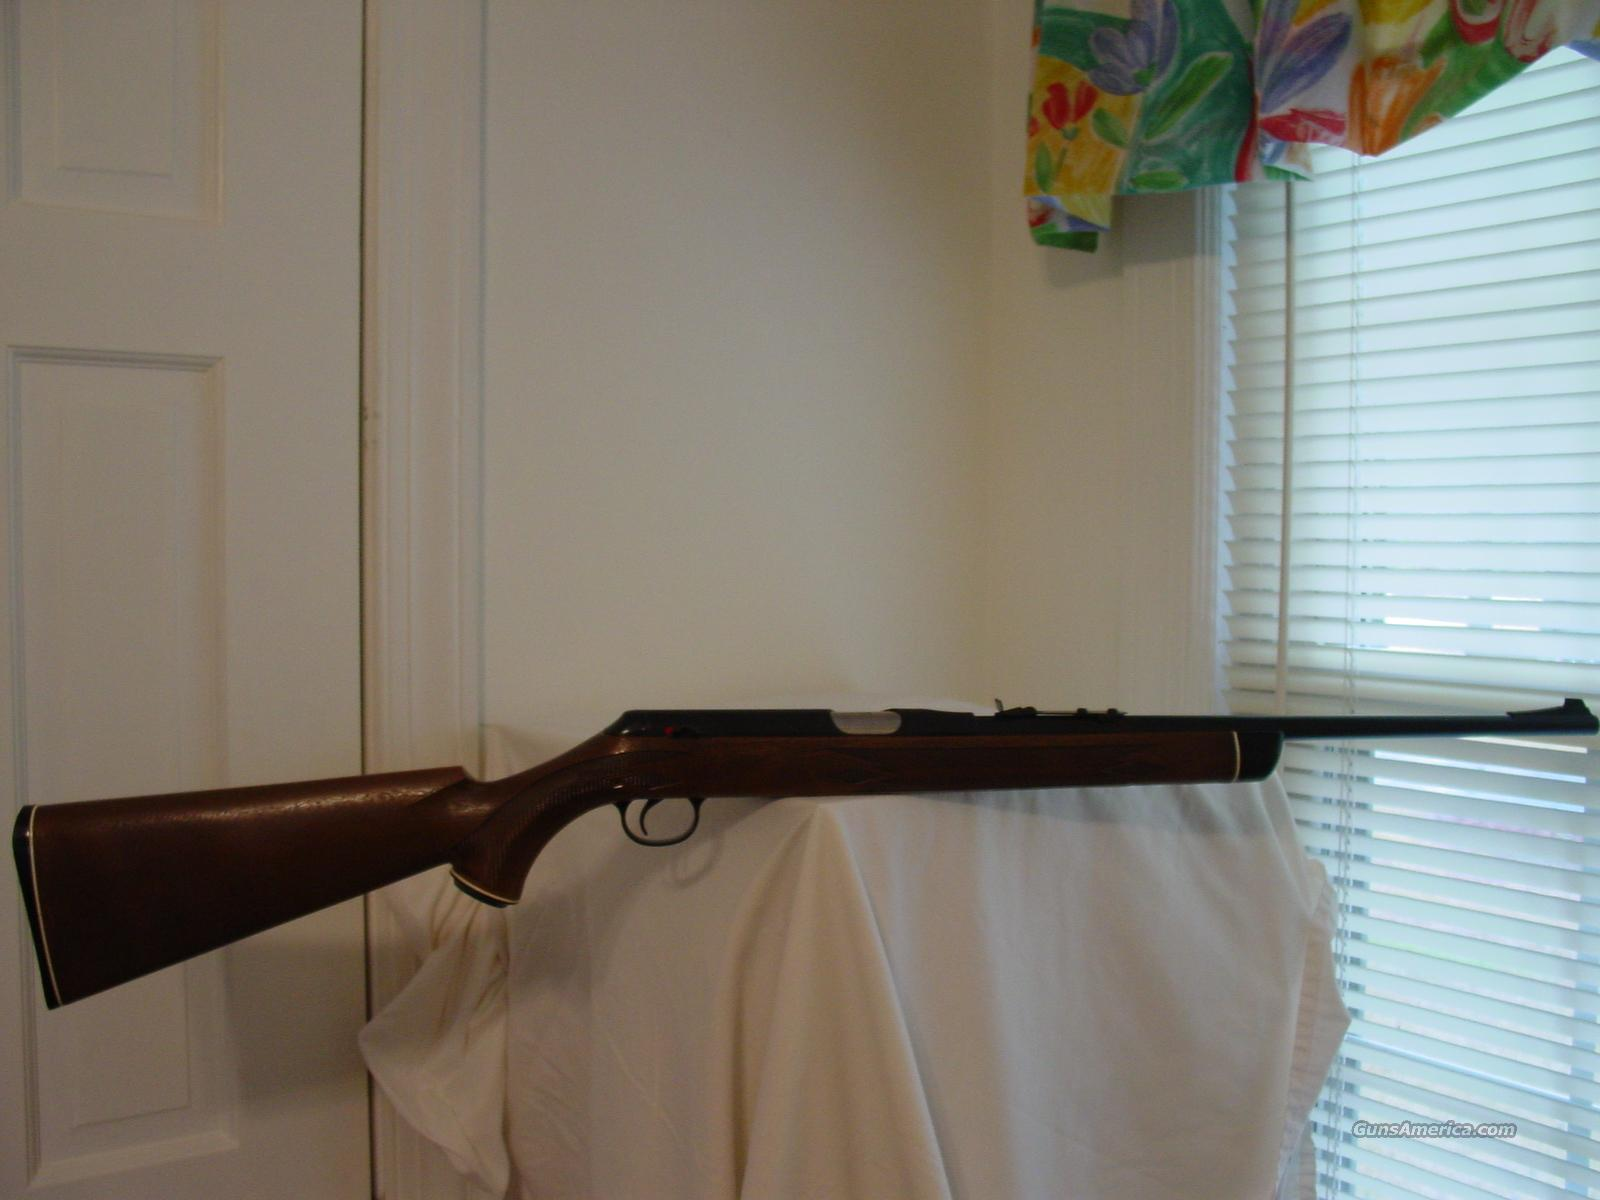 Daisy Heddon VL Rifle  Guns > Rifles > D Misc Rifles